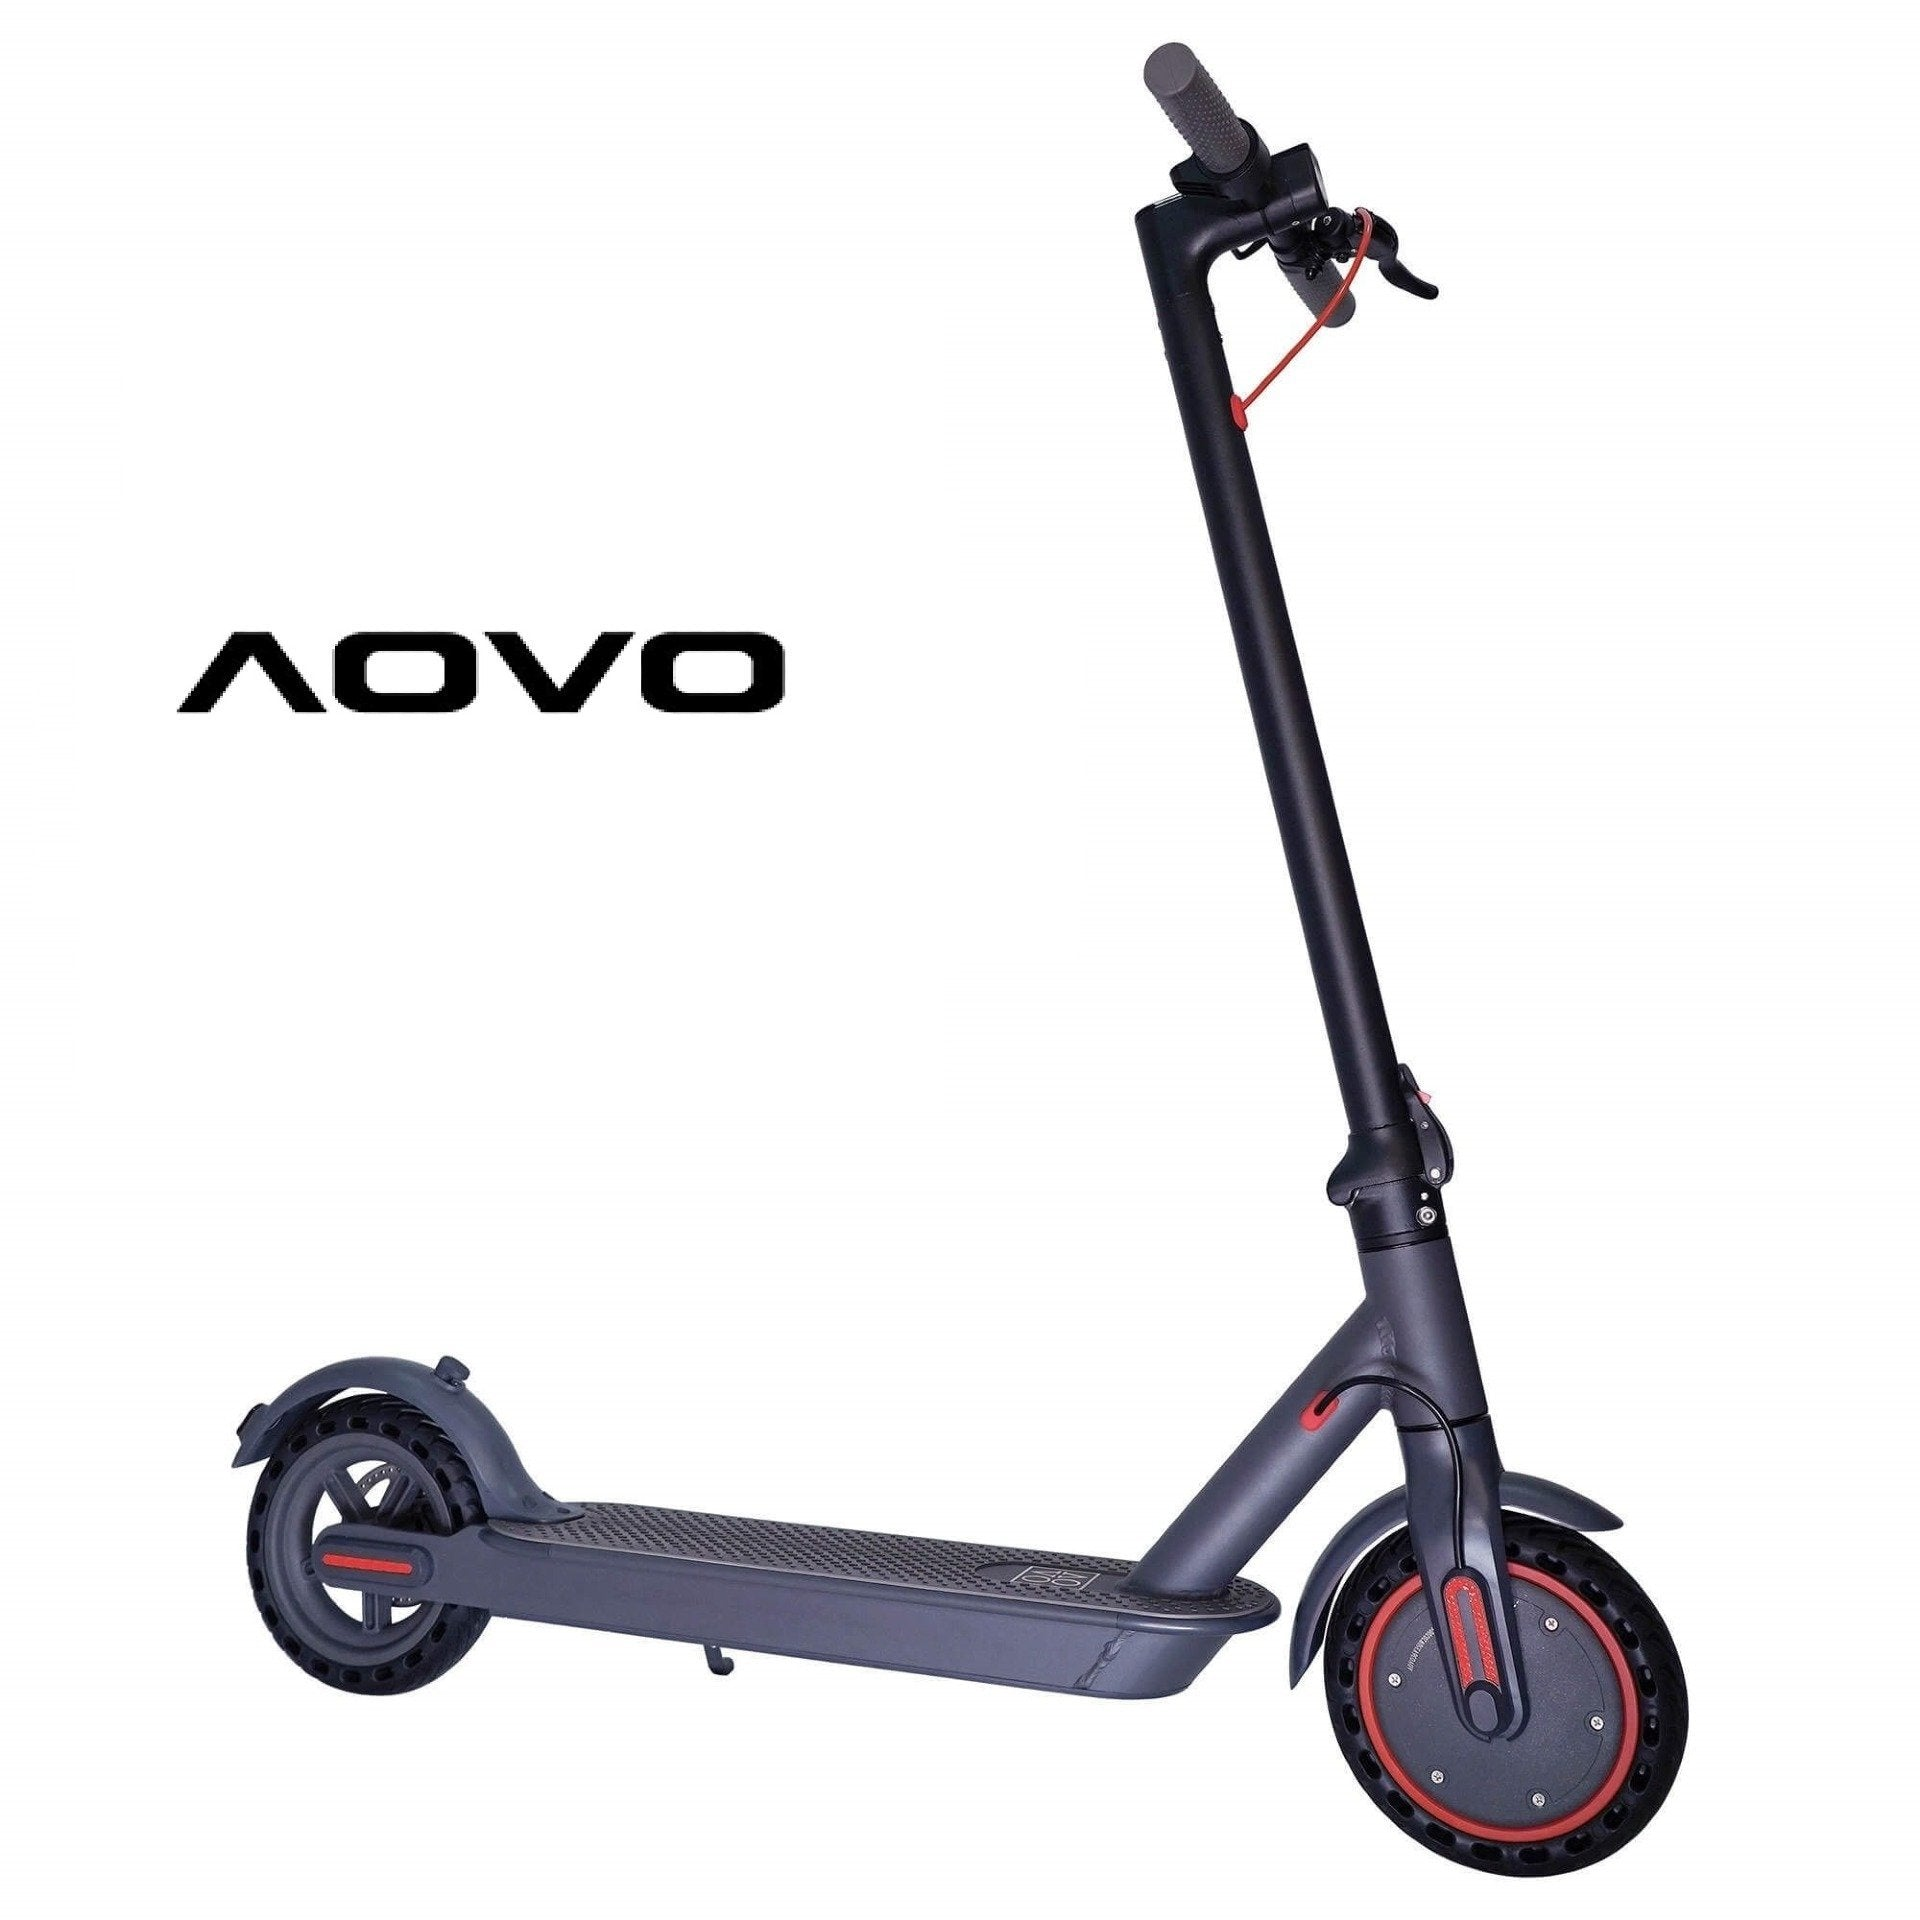 AOVO Pro Electric Scooter UK